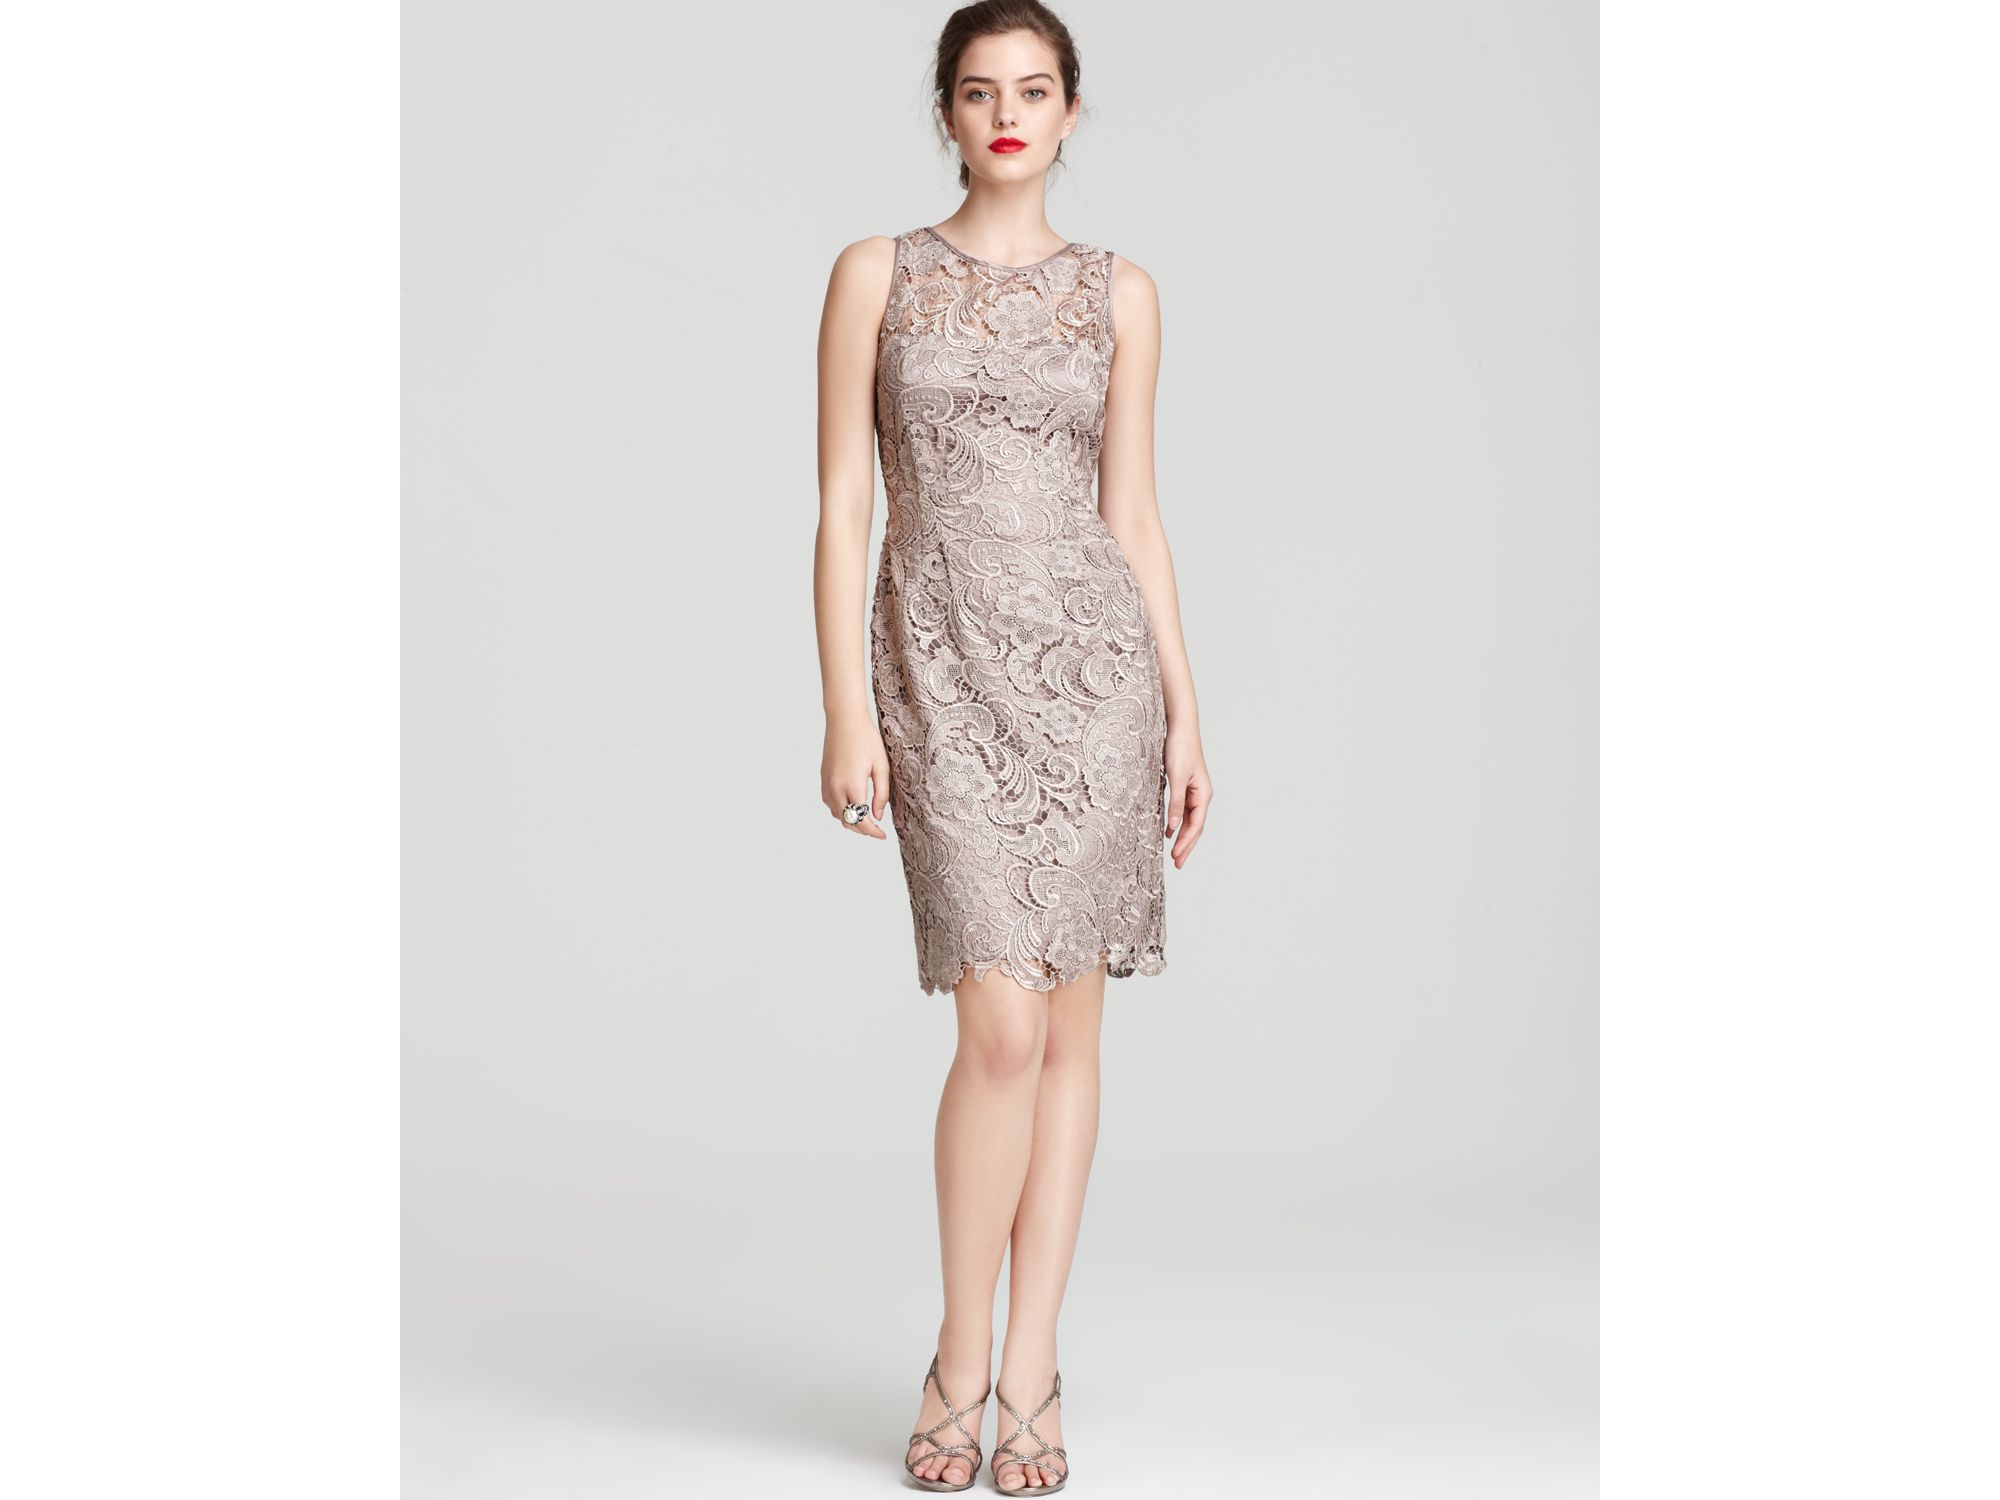 Lyst - Adrianna Papell Lace Dress Sleeveless in Natural